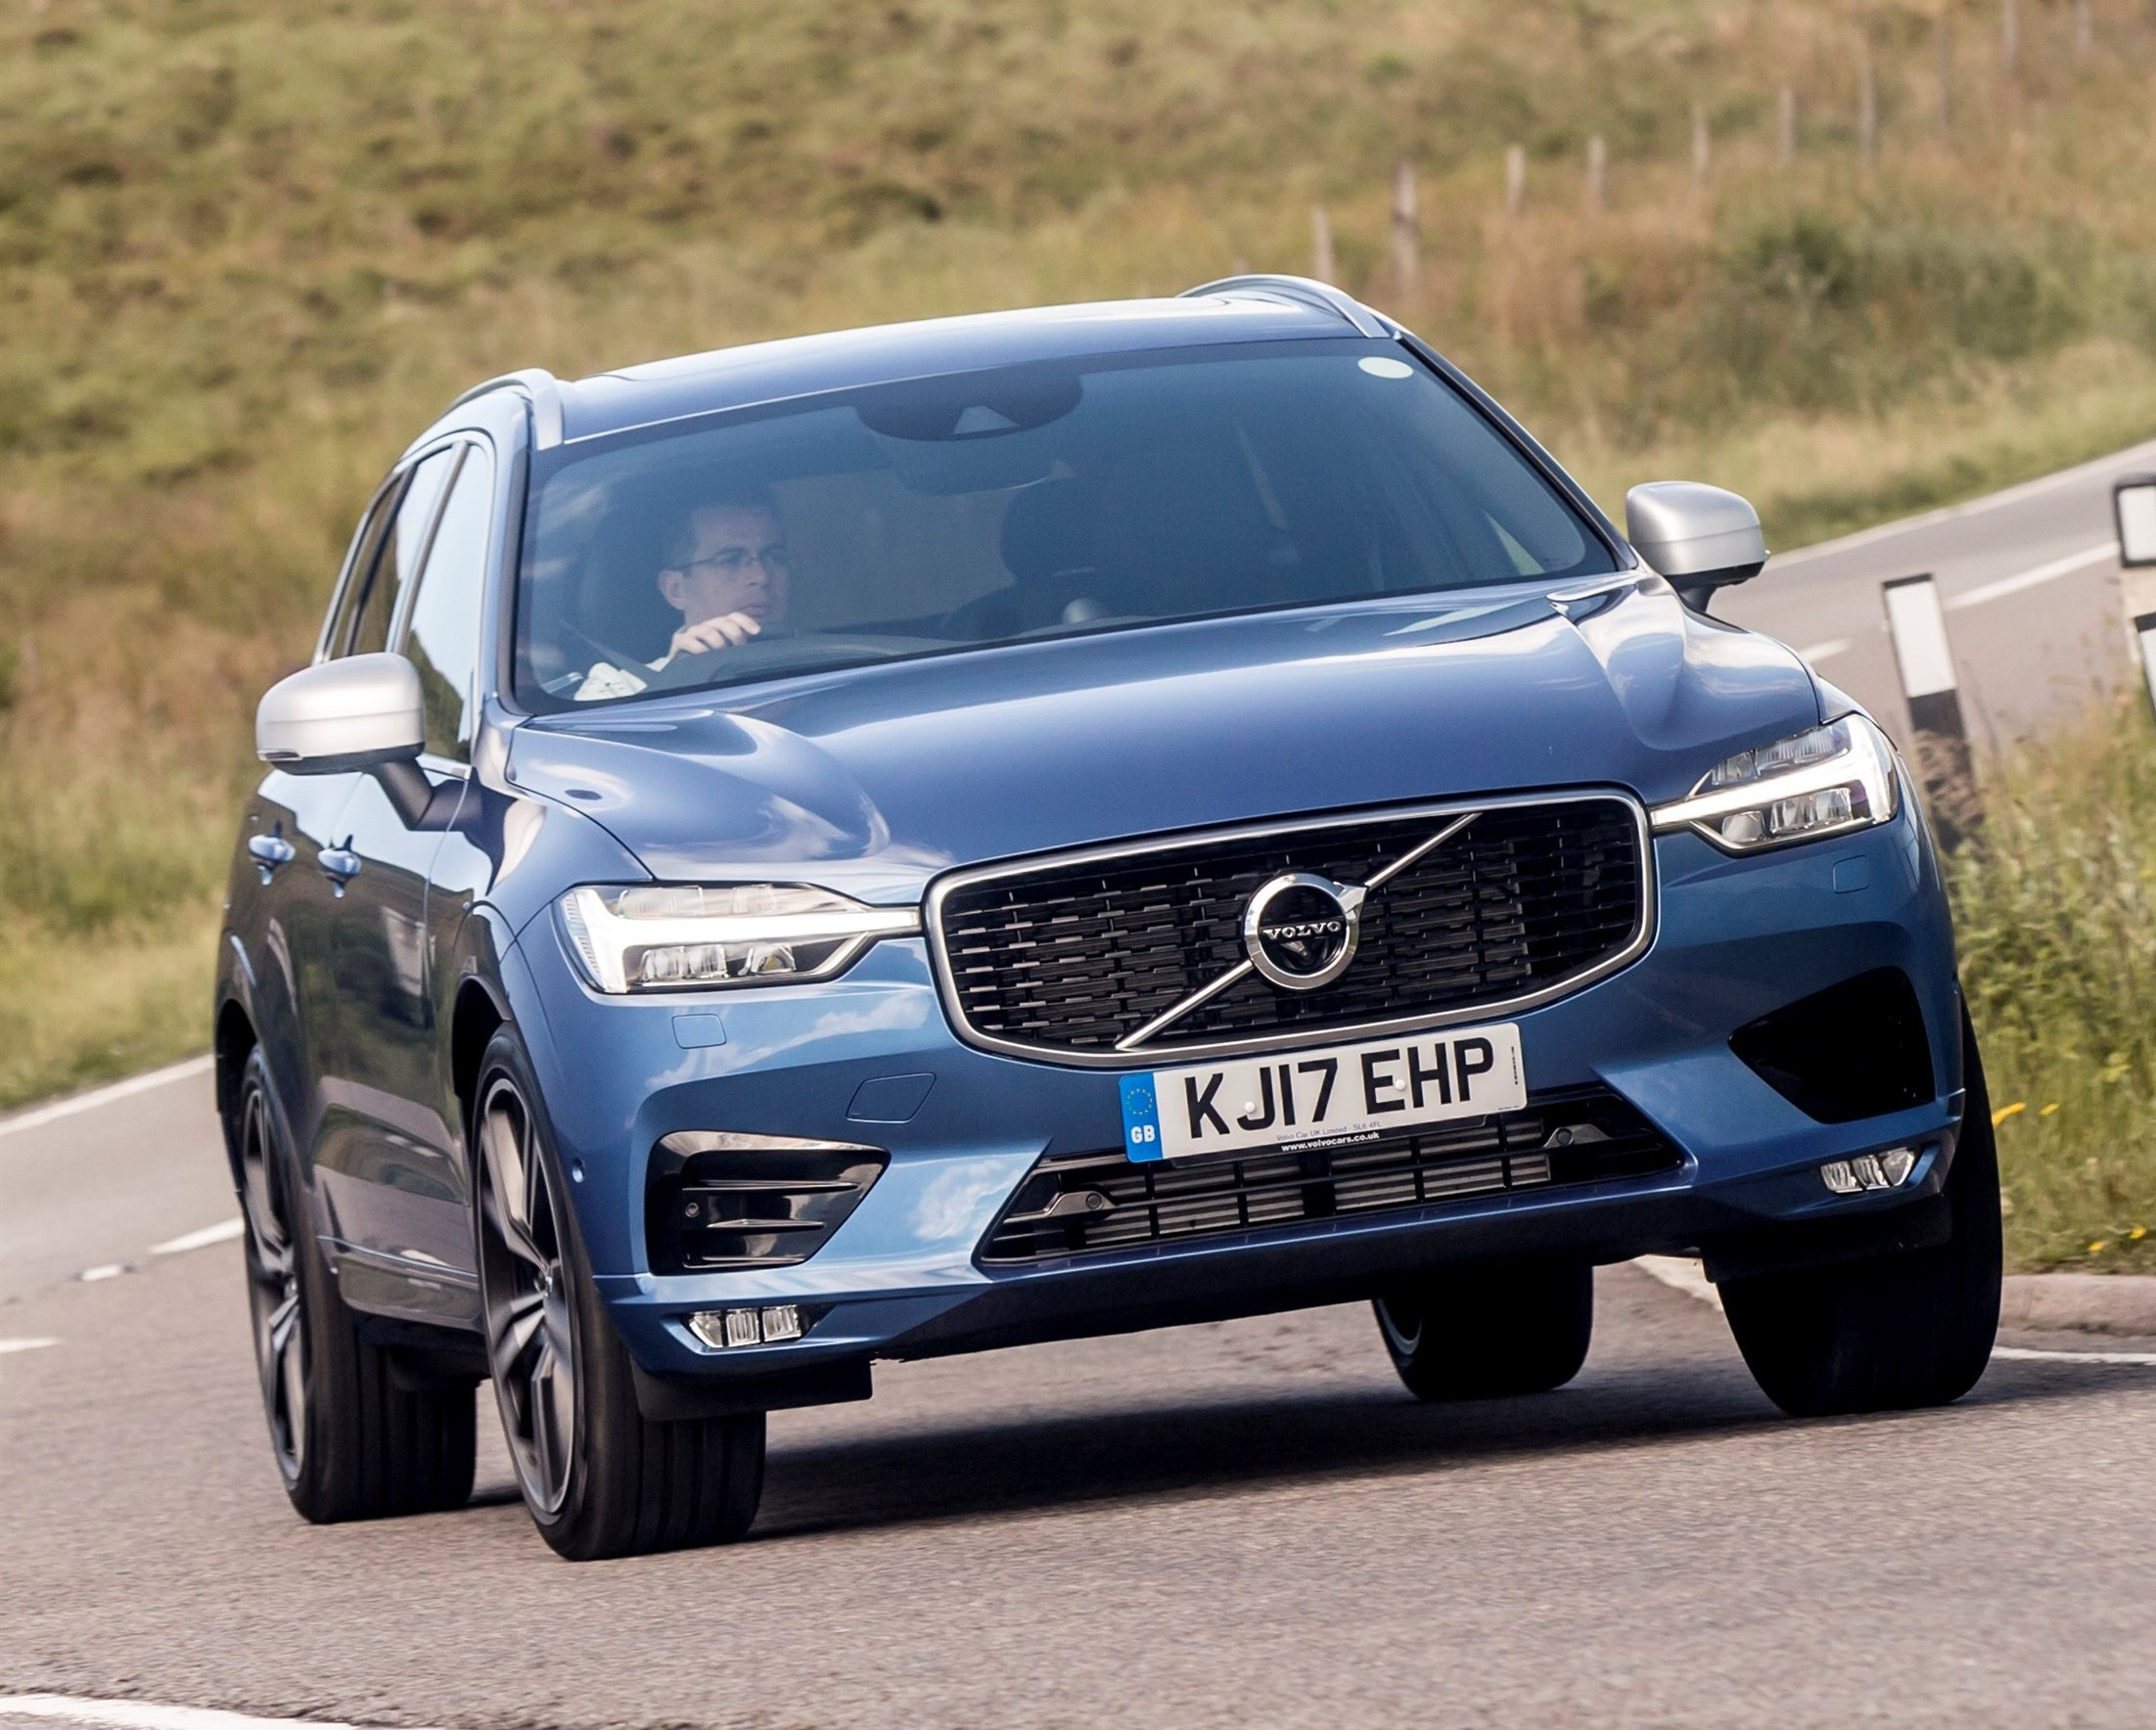 s the led chin new safety cued inscription and e elements spoiler awd outline headlights designs technology electrification exterior of a hammer especially complete volvo with r thor